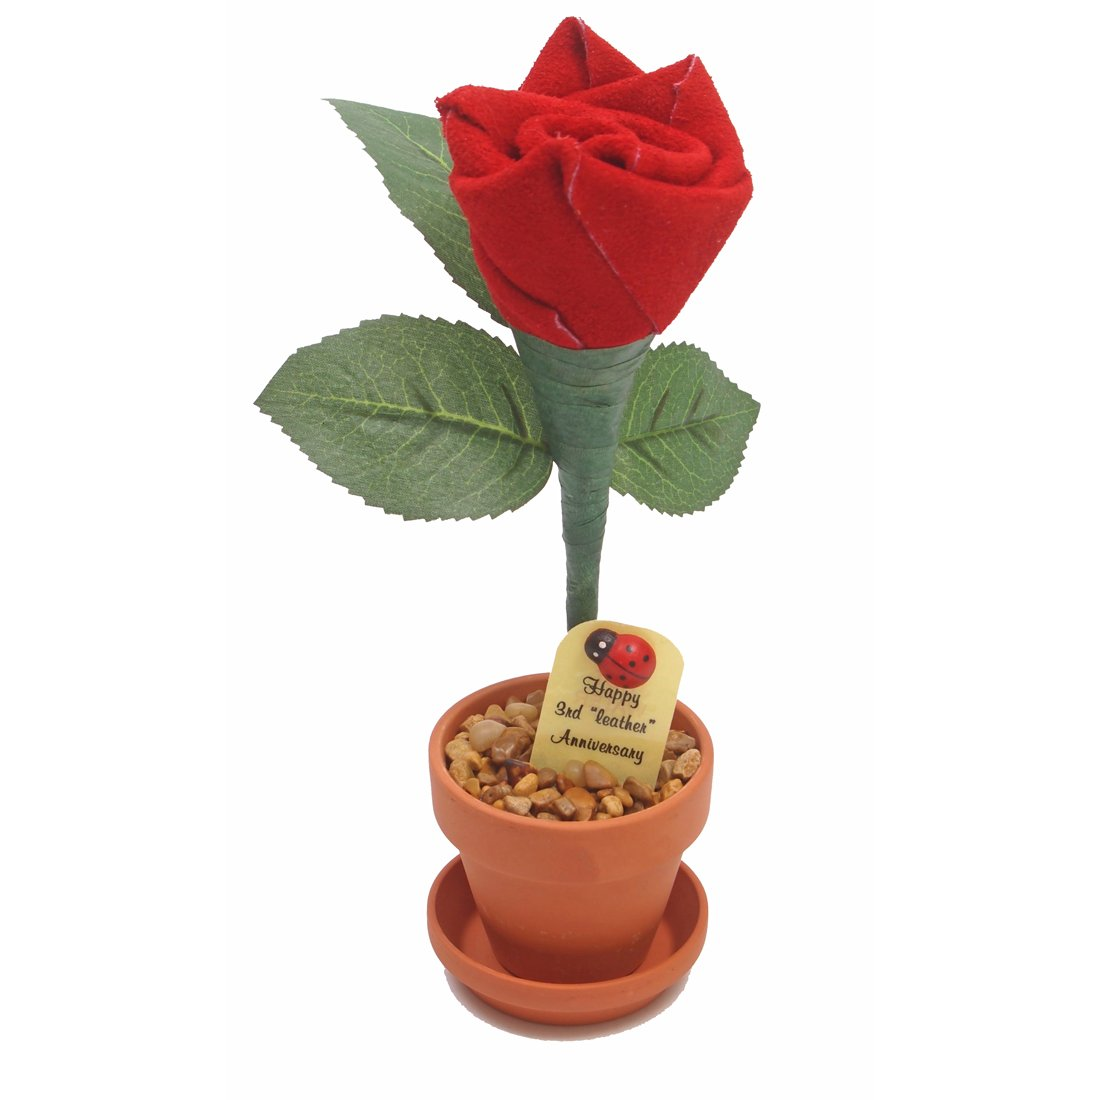 3rd Wedding Anniversary Gift Potted Leather Rose